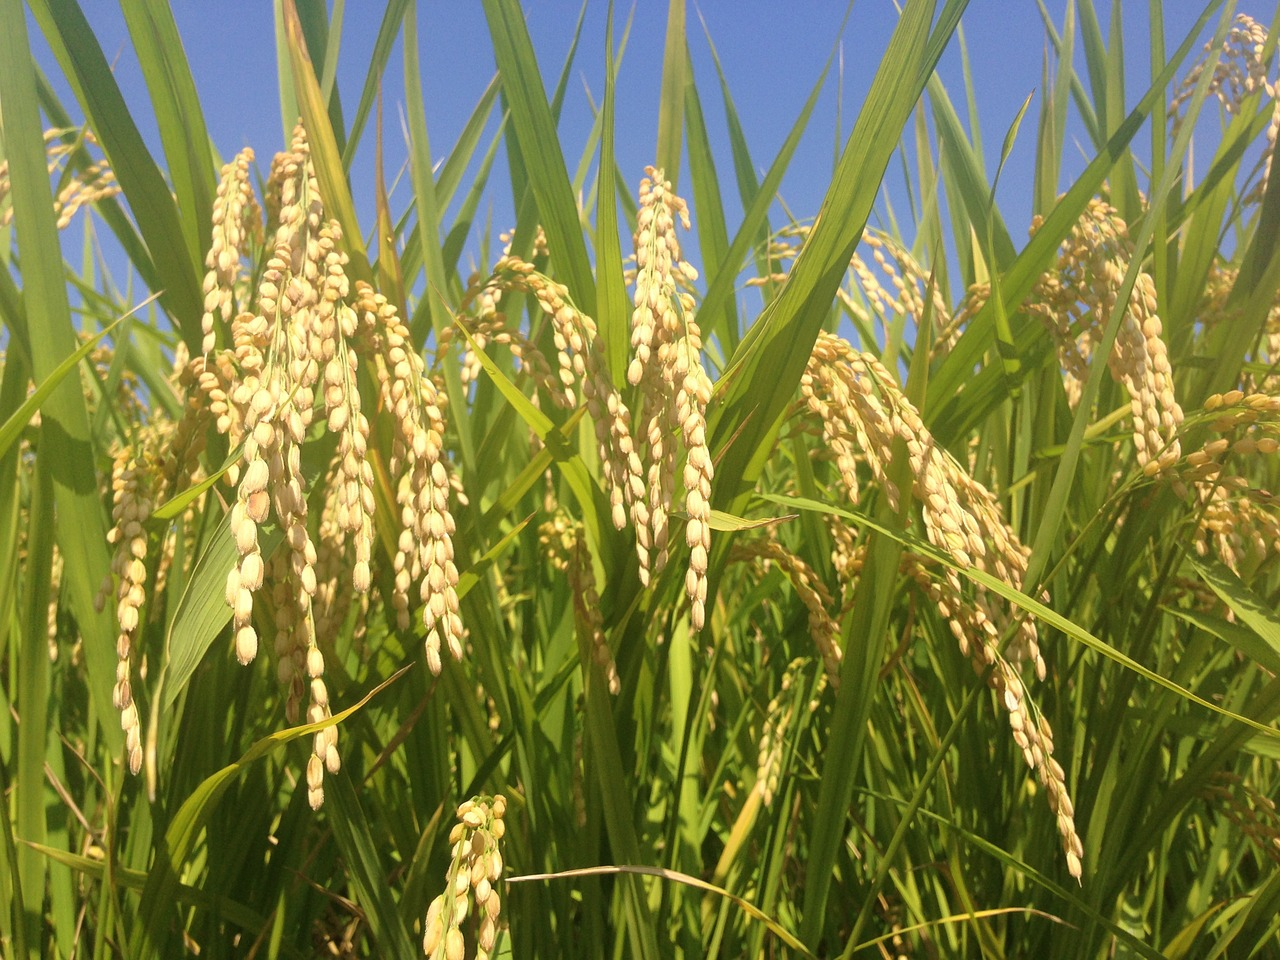 10 Important Reasons Why Agriculture Needs Biotech Crops